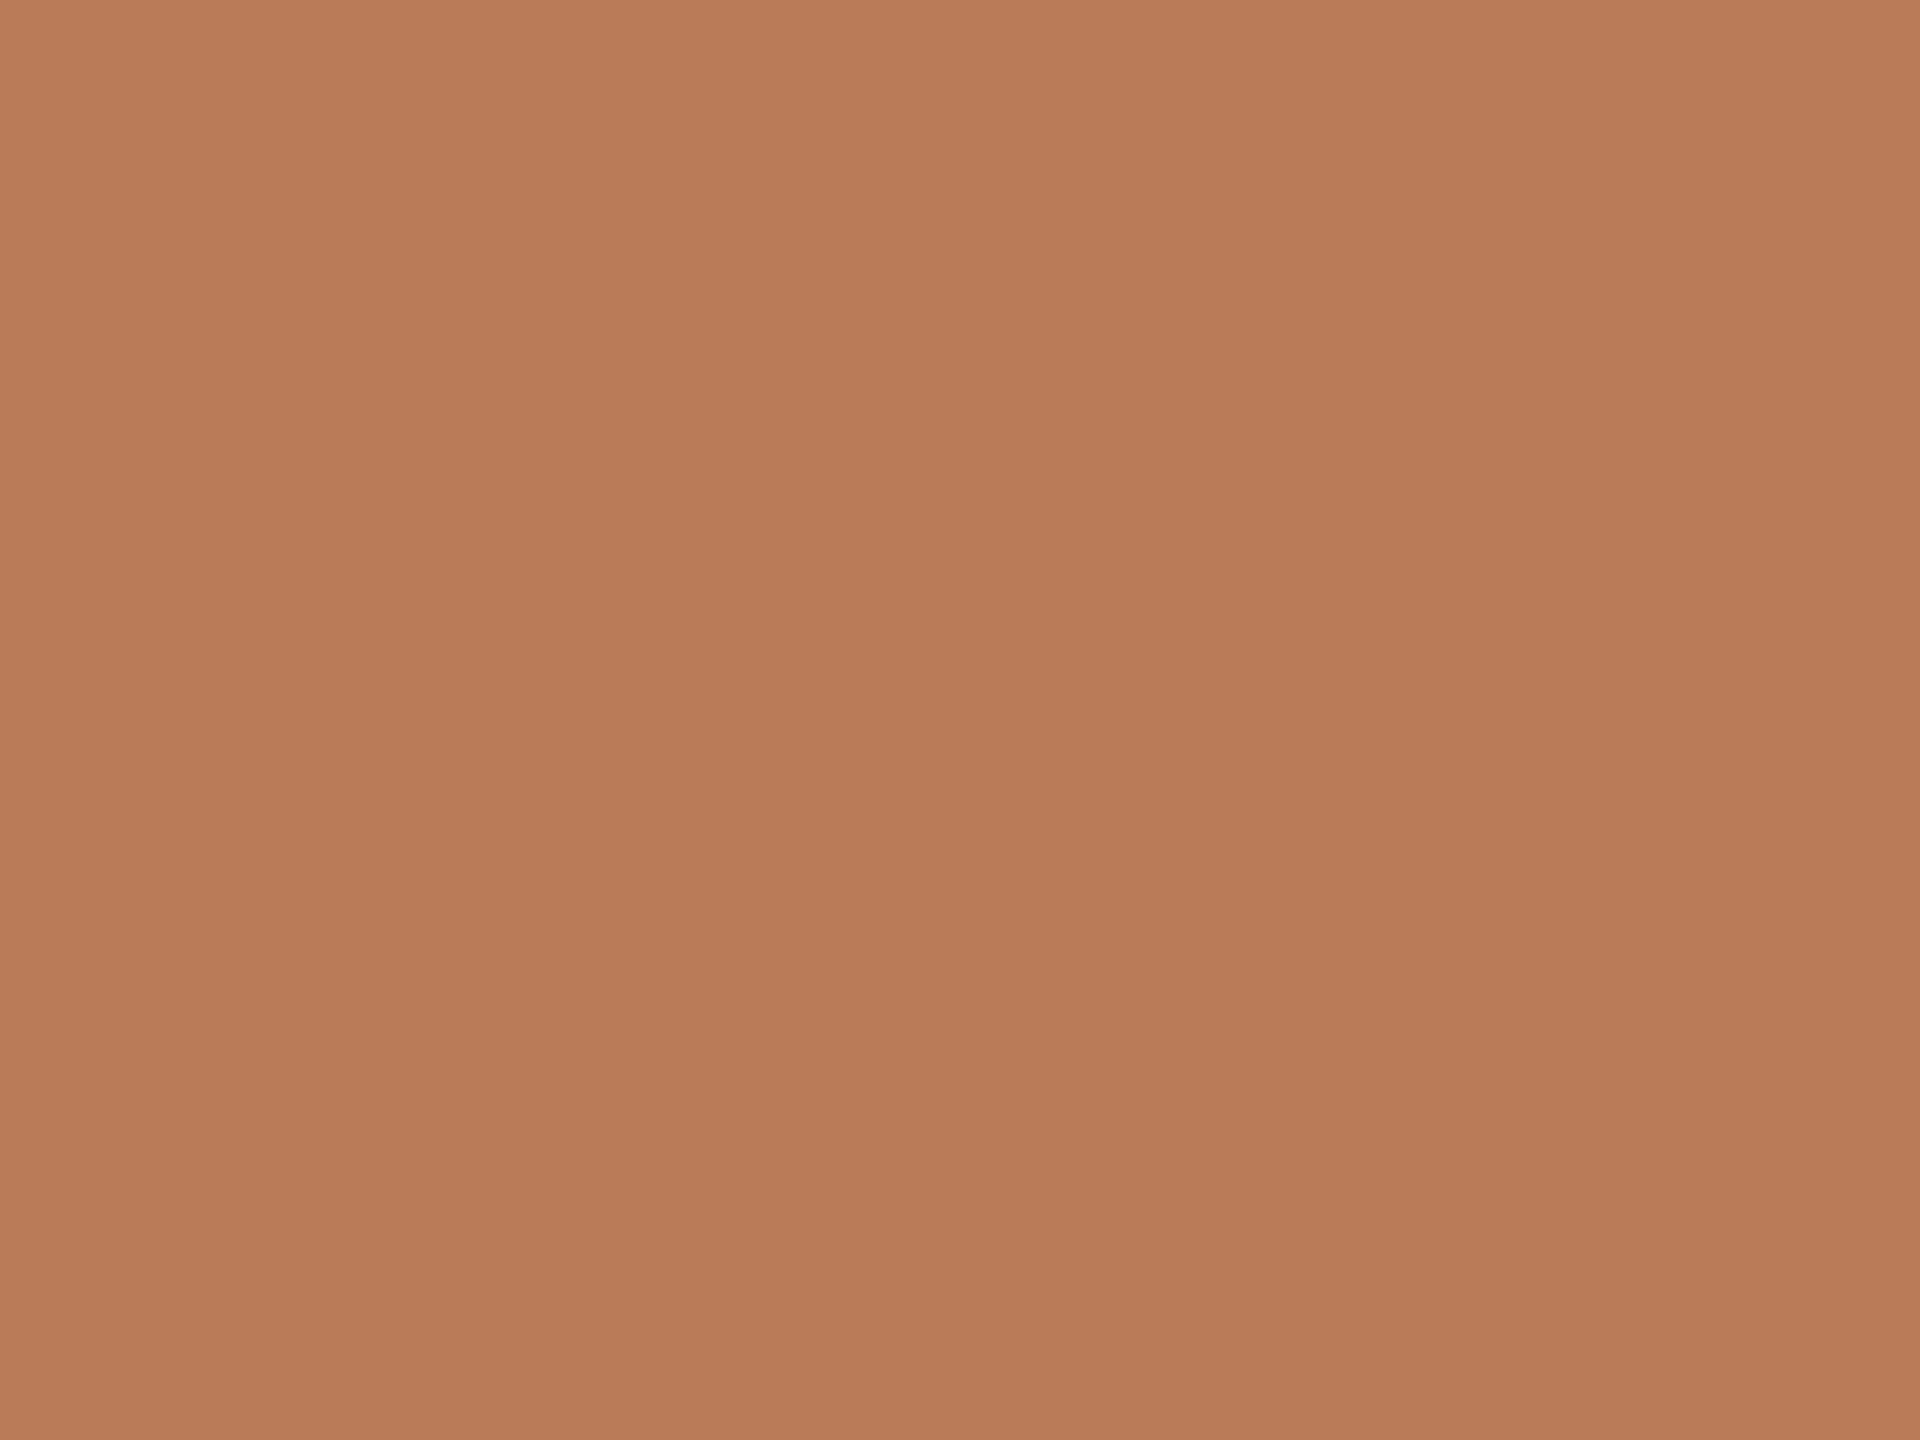 solid light brown background